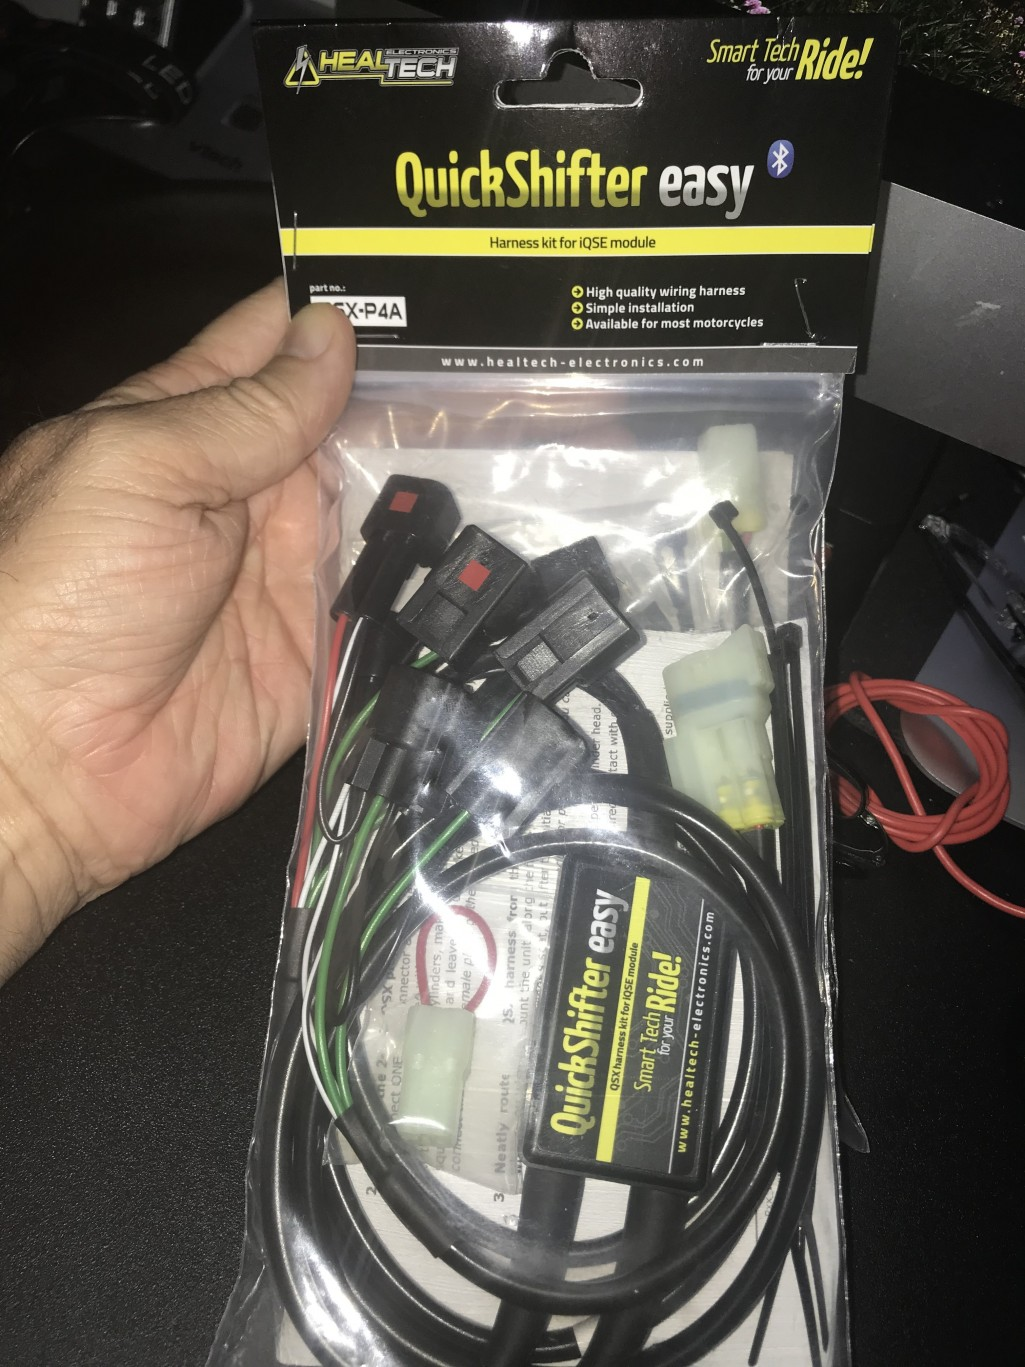 Healtech Quickshifter Lighting Electrical And Wiring Harness Module What Do You Need For Your Trying To Decide If I Should Install It Myself Or Have The Dealership When They My First 600 Mile Service In 2 Weeks Recommendations